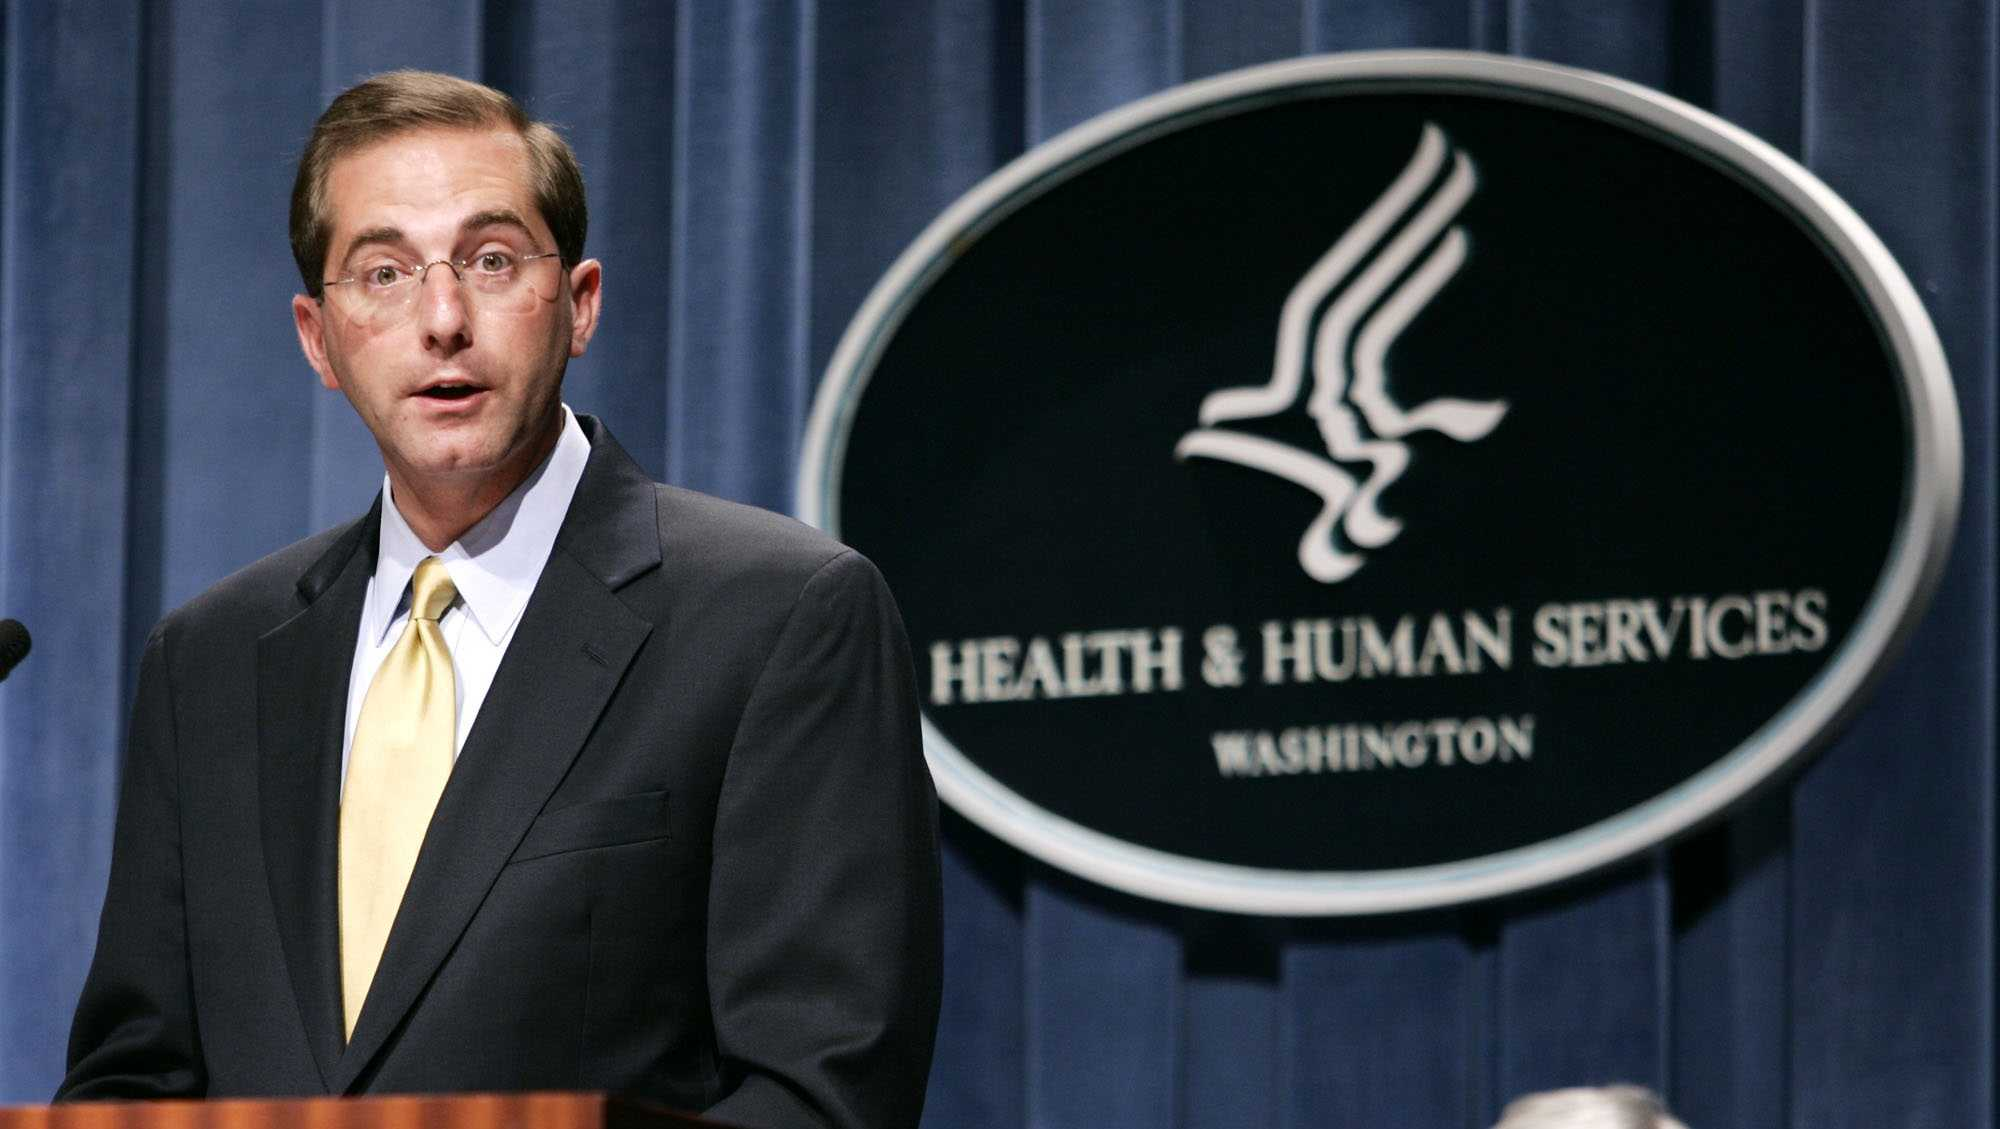 Deputy Health and Human Services Secretary Alex Azar meets reporters at the HHS Department in Washington, Thursday, June 8, 2006.